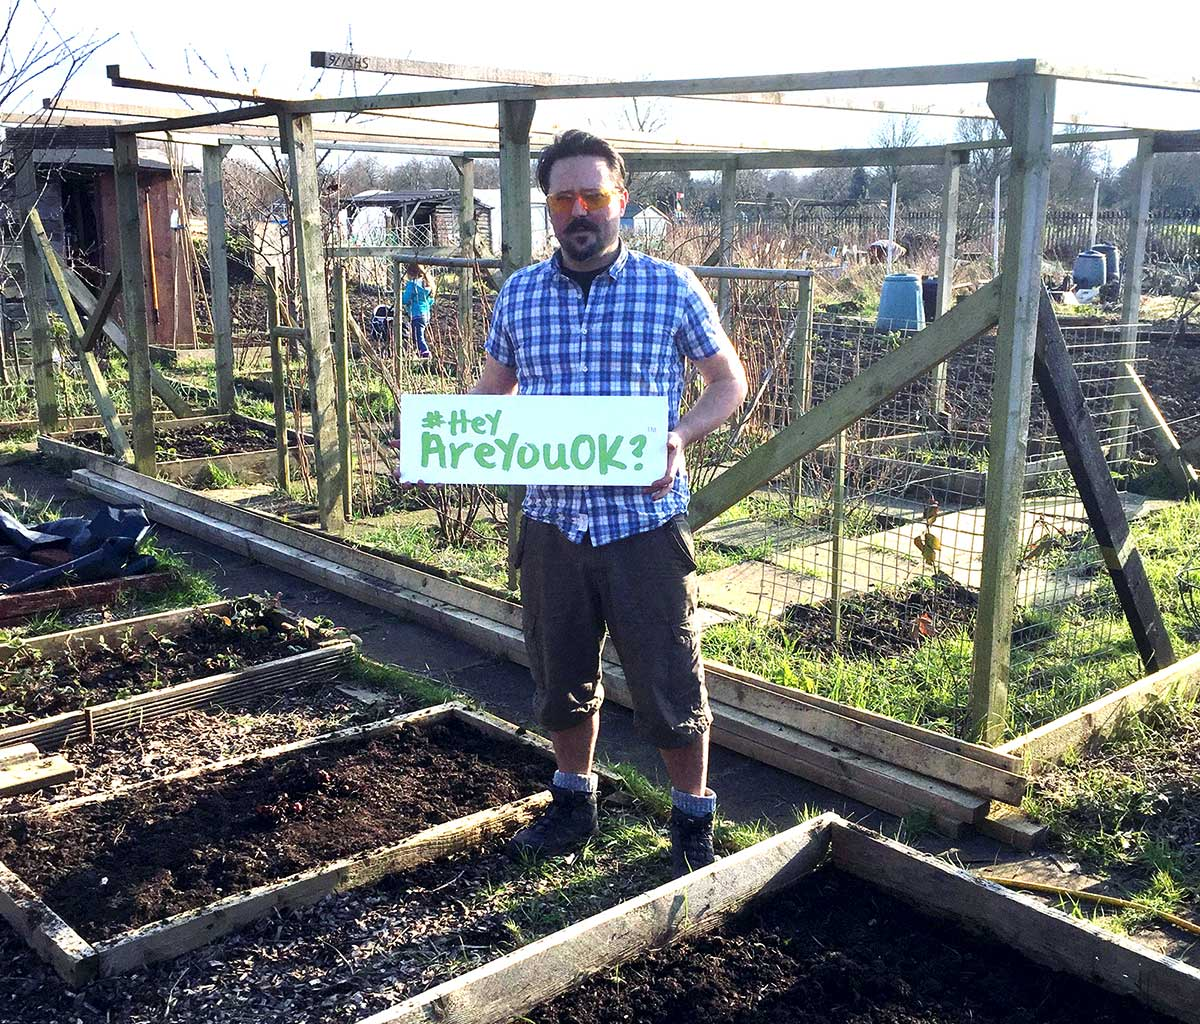 Allotment Junkie holding a sign '#HeyAreYouOK' down the allotment plot showing support for the campaign